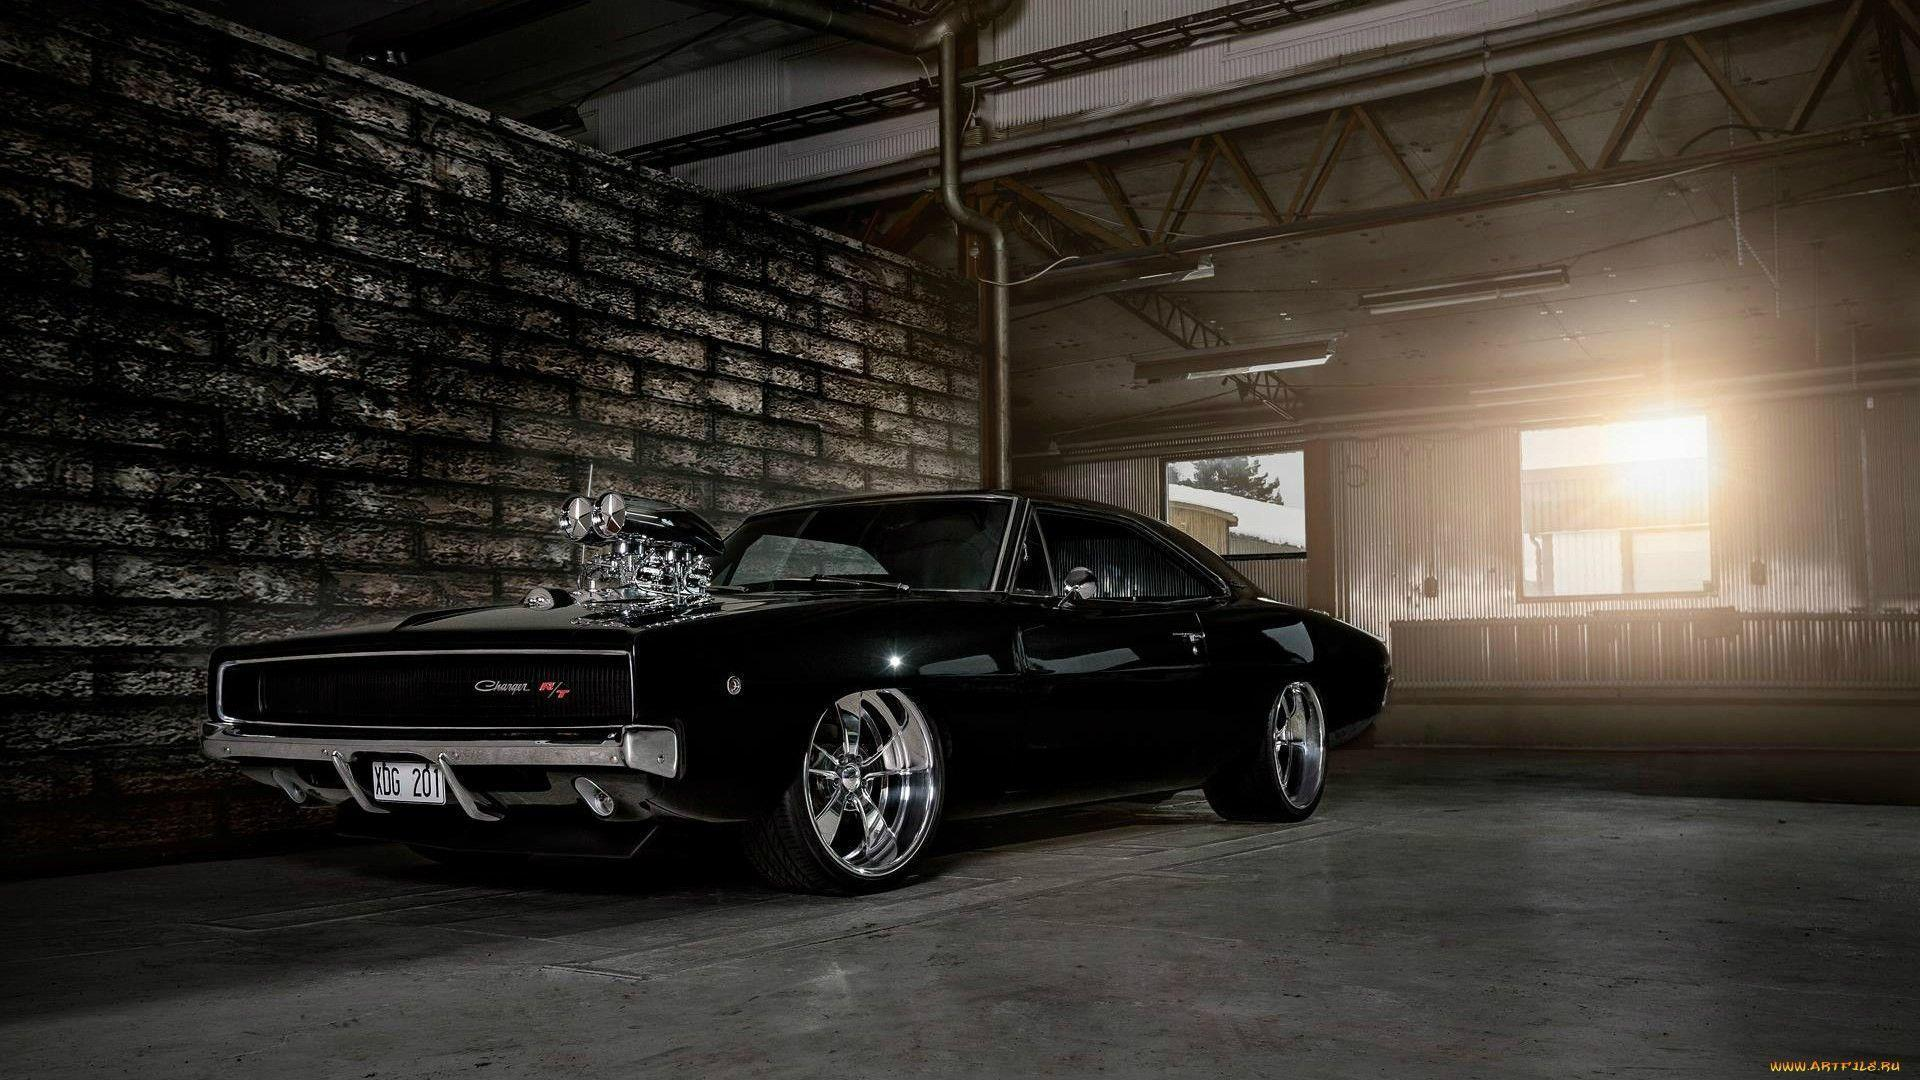 Dodge Challenger 1970 Wallpaper 1970 Dodge Charger Wallpapers Wallpaper Cave